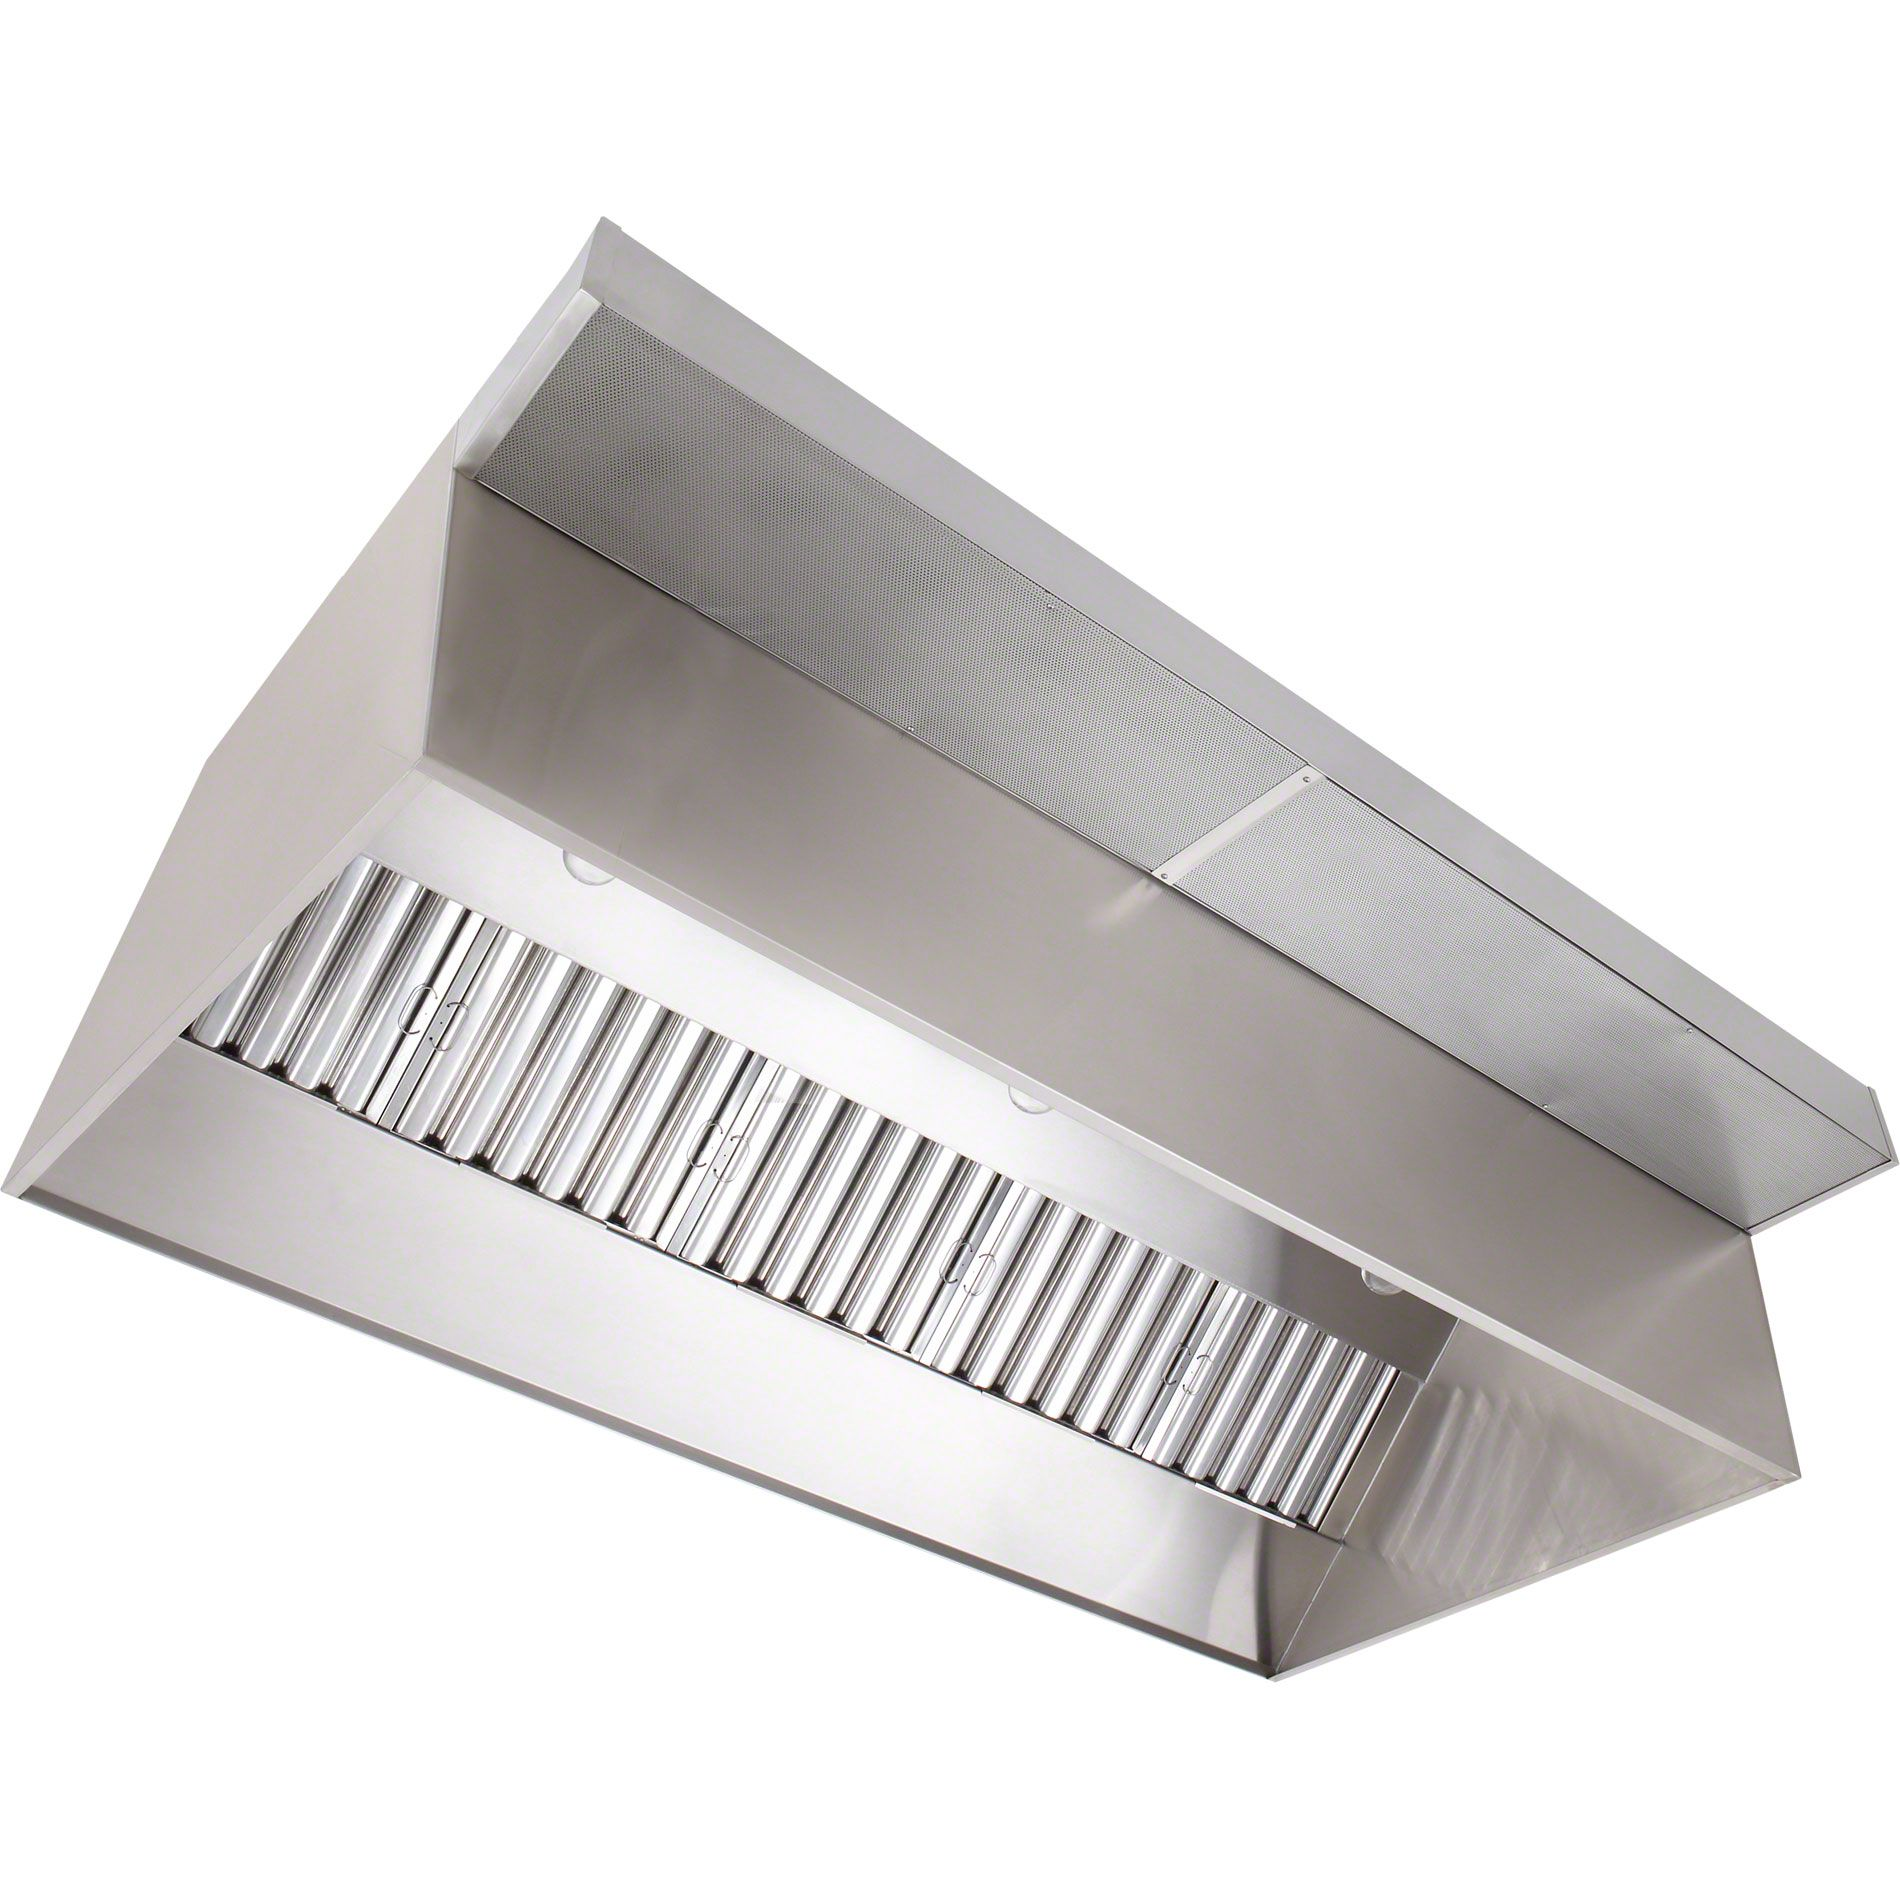 Captive Aire Cas 12 Wchfhmus 12 Wall Canopy Exhaust Only Vent Hood Exhaust Fan Make Up Air Unit Vent Hood Exhaust Fan Exhaust Vent